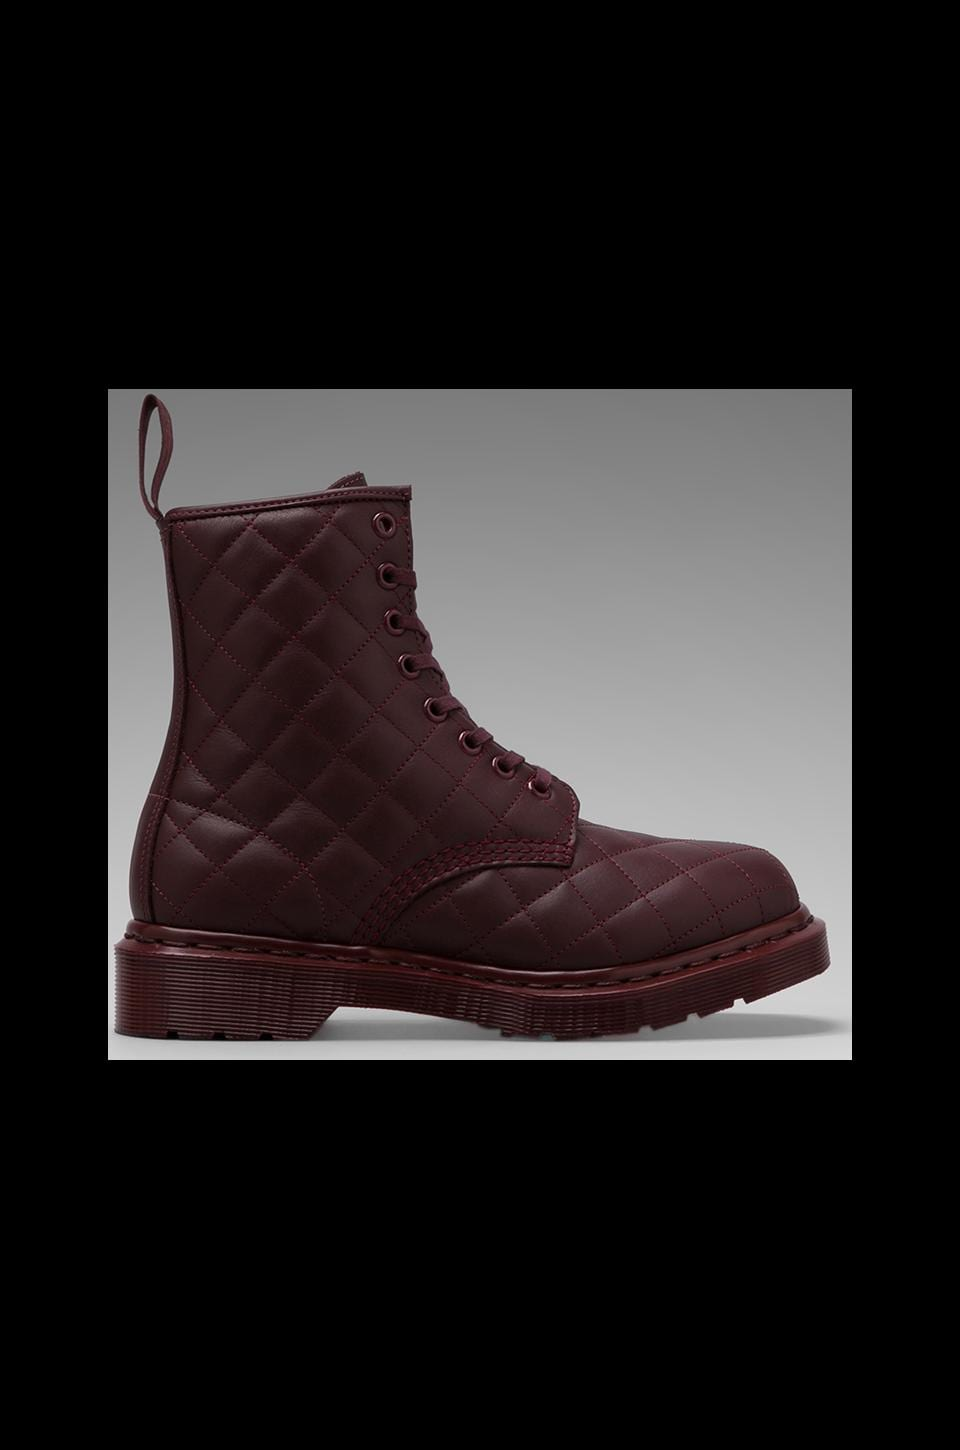 Dr. Martens Coralie Quilted 8-Eye Boot in Cherry Red